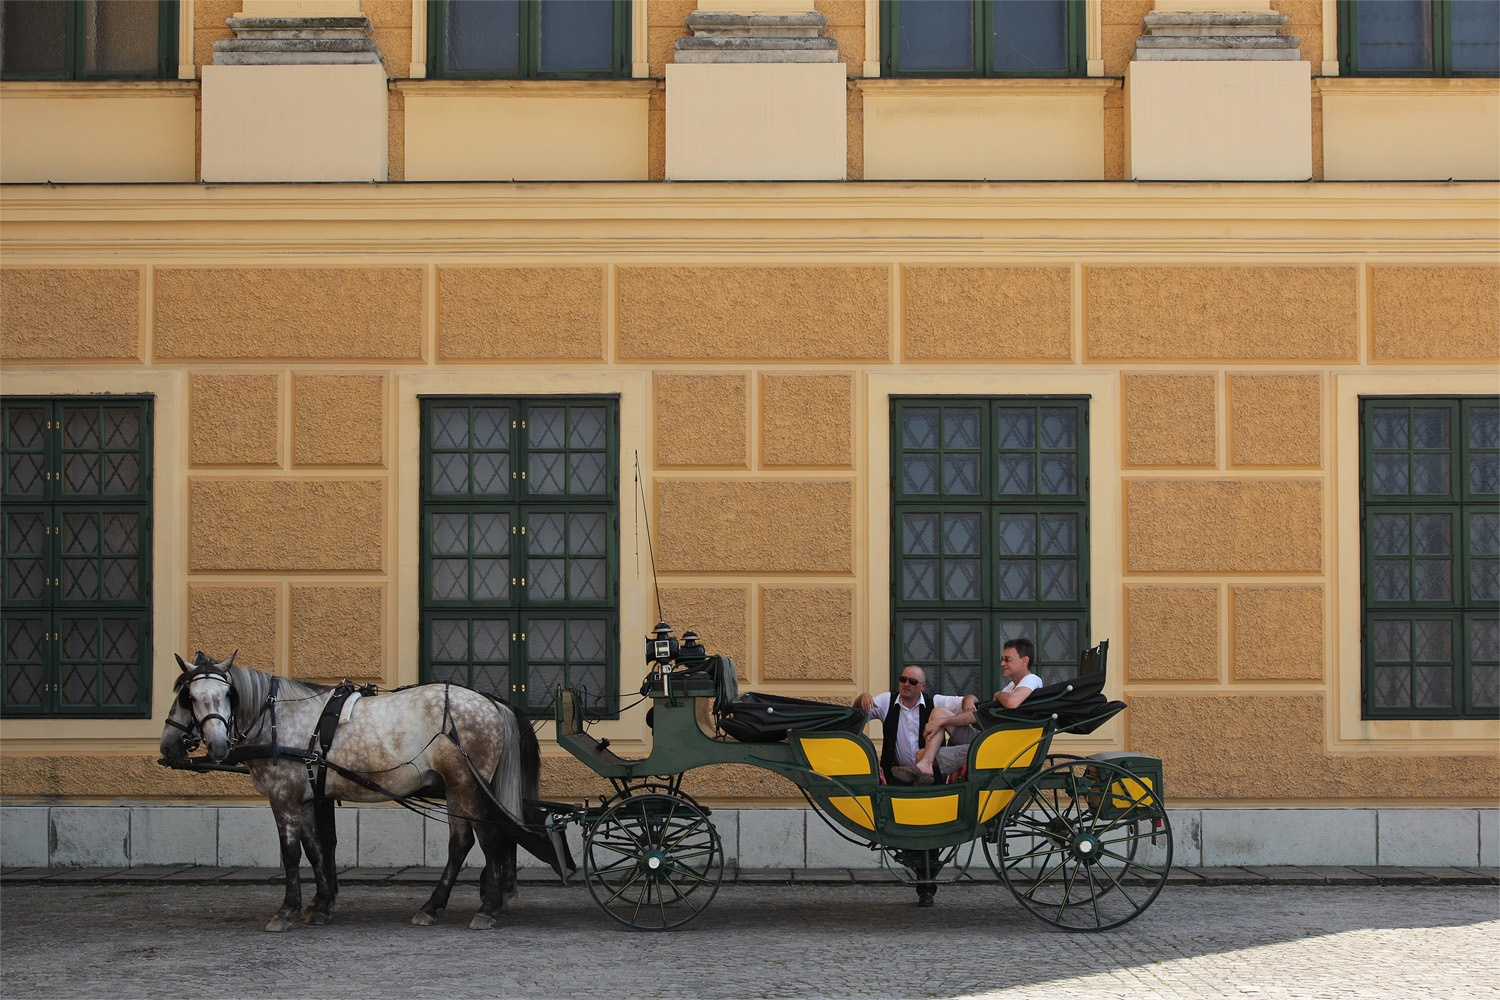 yellowcarriage